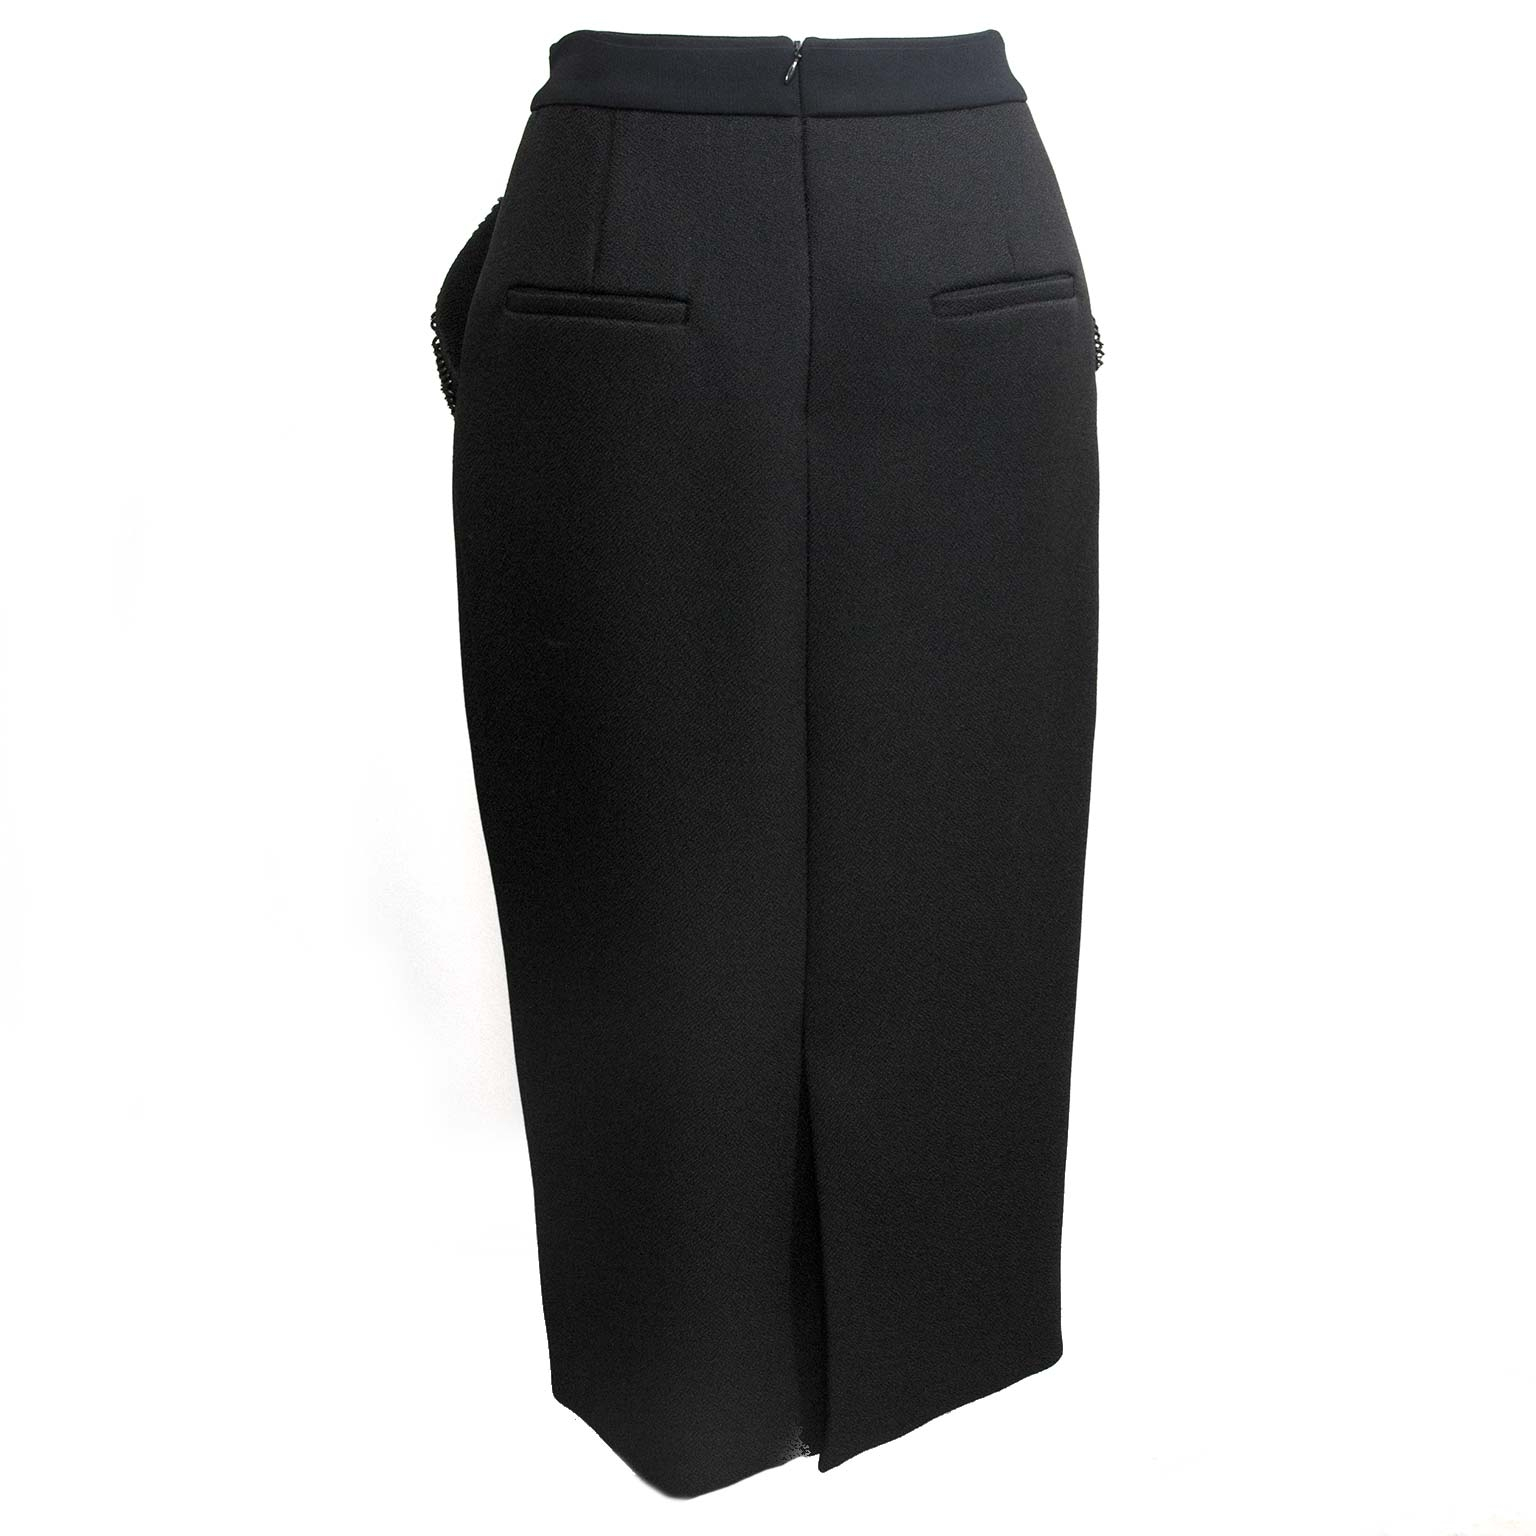 balenciaga black pencil skirt now for sale at labellov vintage fashion webshop belgium